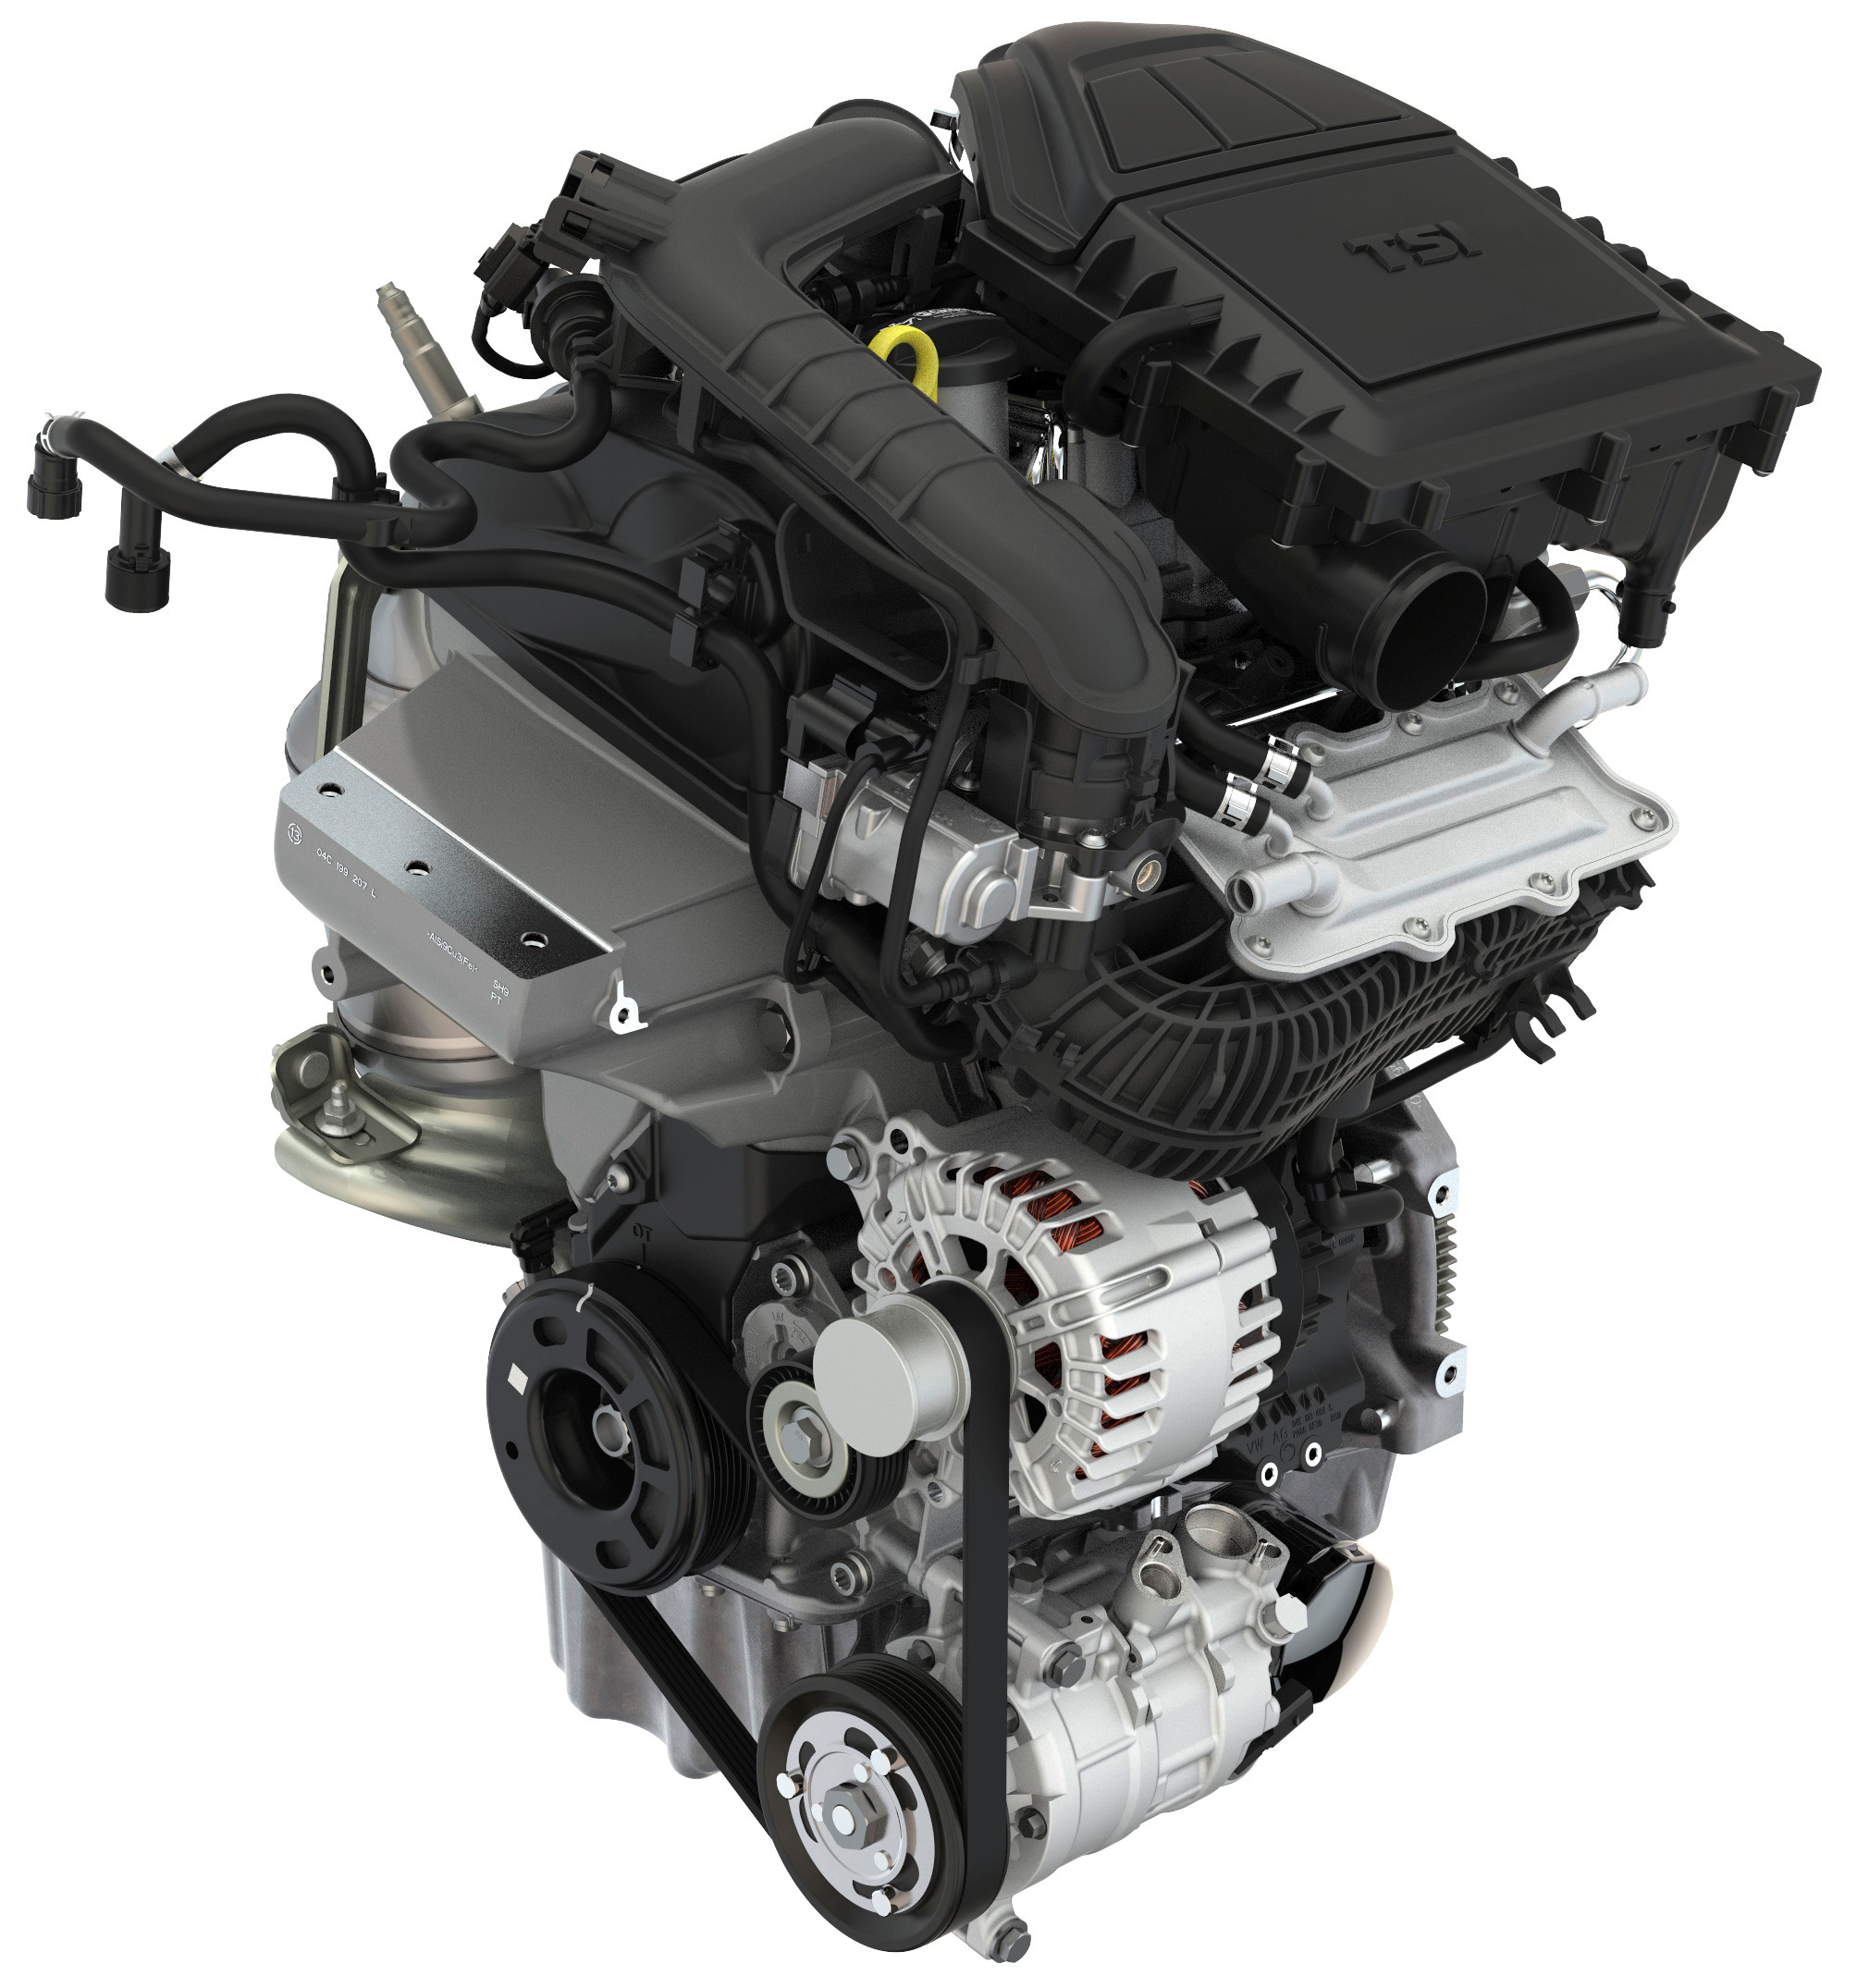 Koda Fabia 10 Tsi Dynamic Three Cylinder Engine With Low Fuel Turbo Beetle Diagram Car Parts And Component Consumption